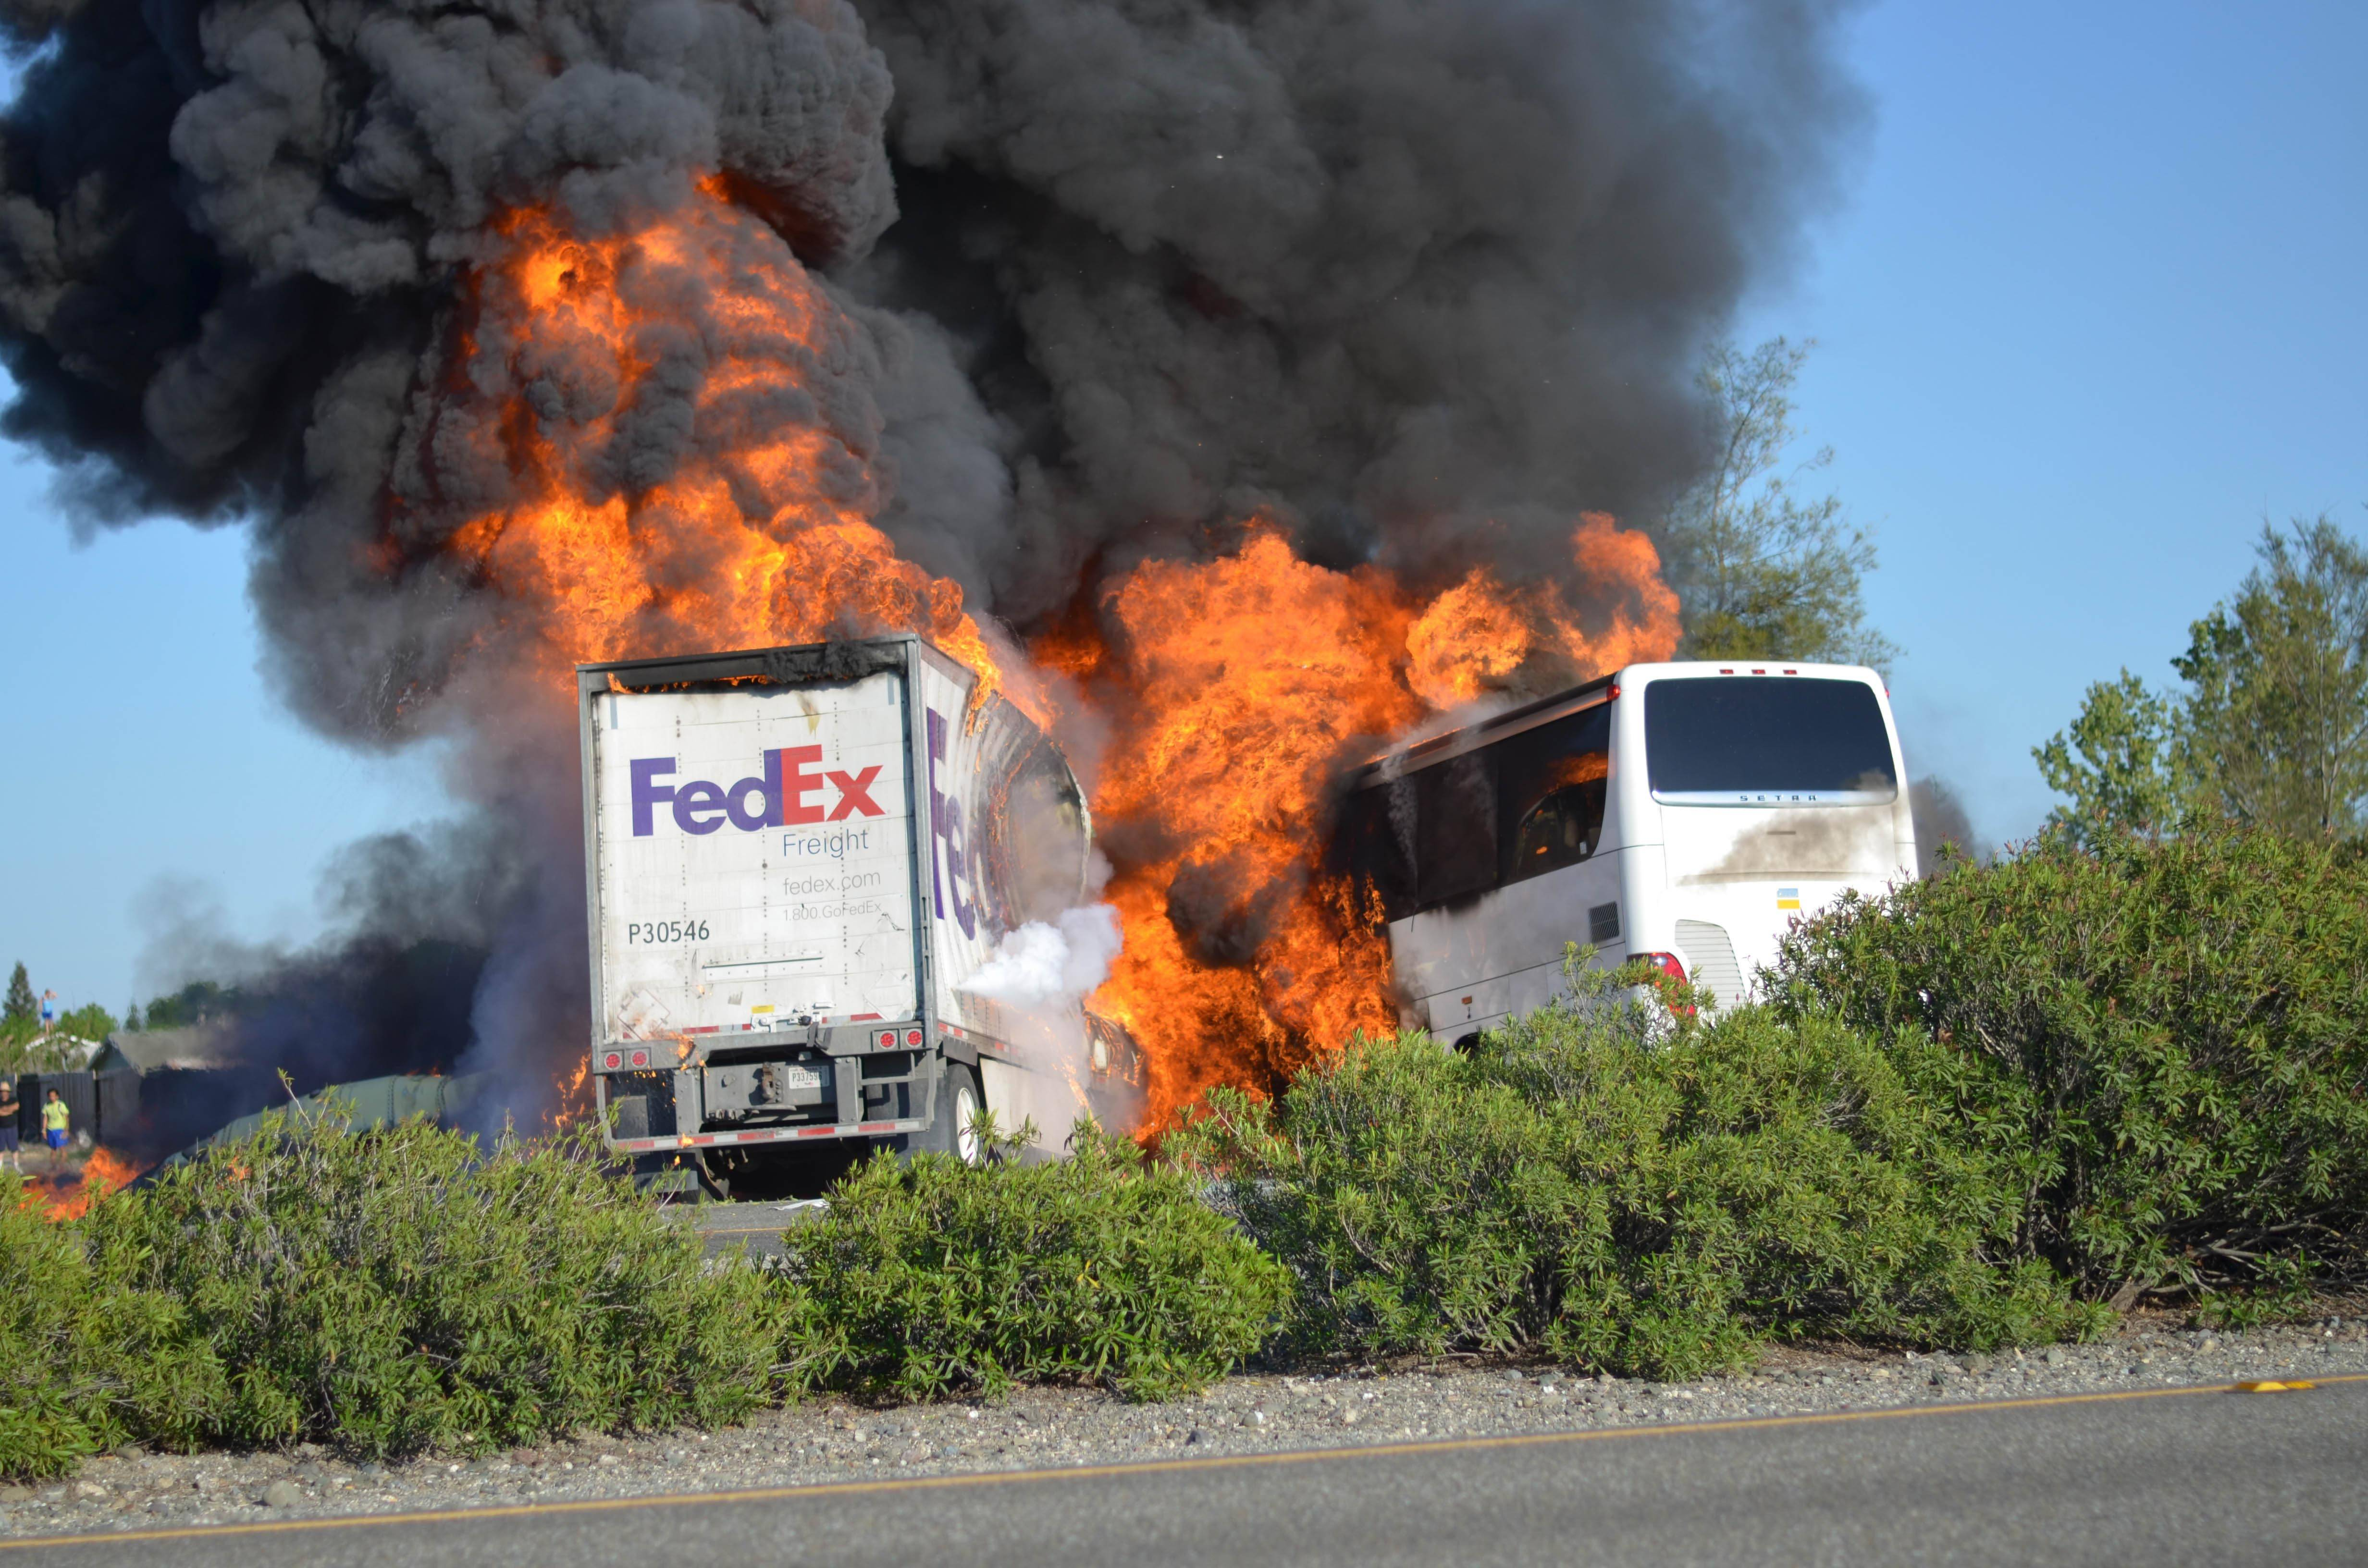 Authorities are releasing 911 calls made after a FedEx struck slammed into a tour bus carrying high school students last week, killing 10 people. The crash is under investigation by state and federal officials who are trying to determine why the truck driver careened across an Interstate-5 median and struck the bus, leaving no tire marks to suggest he tried to brake.